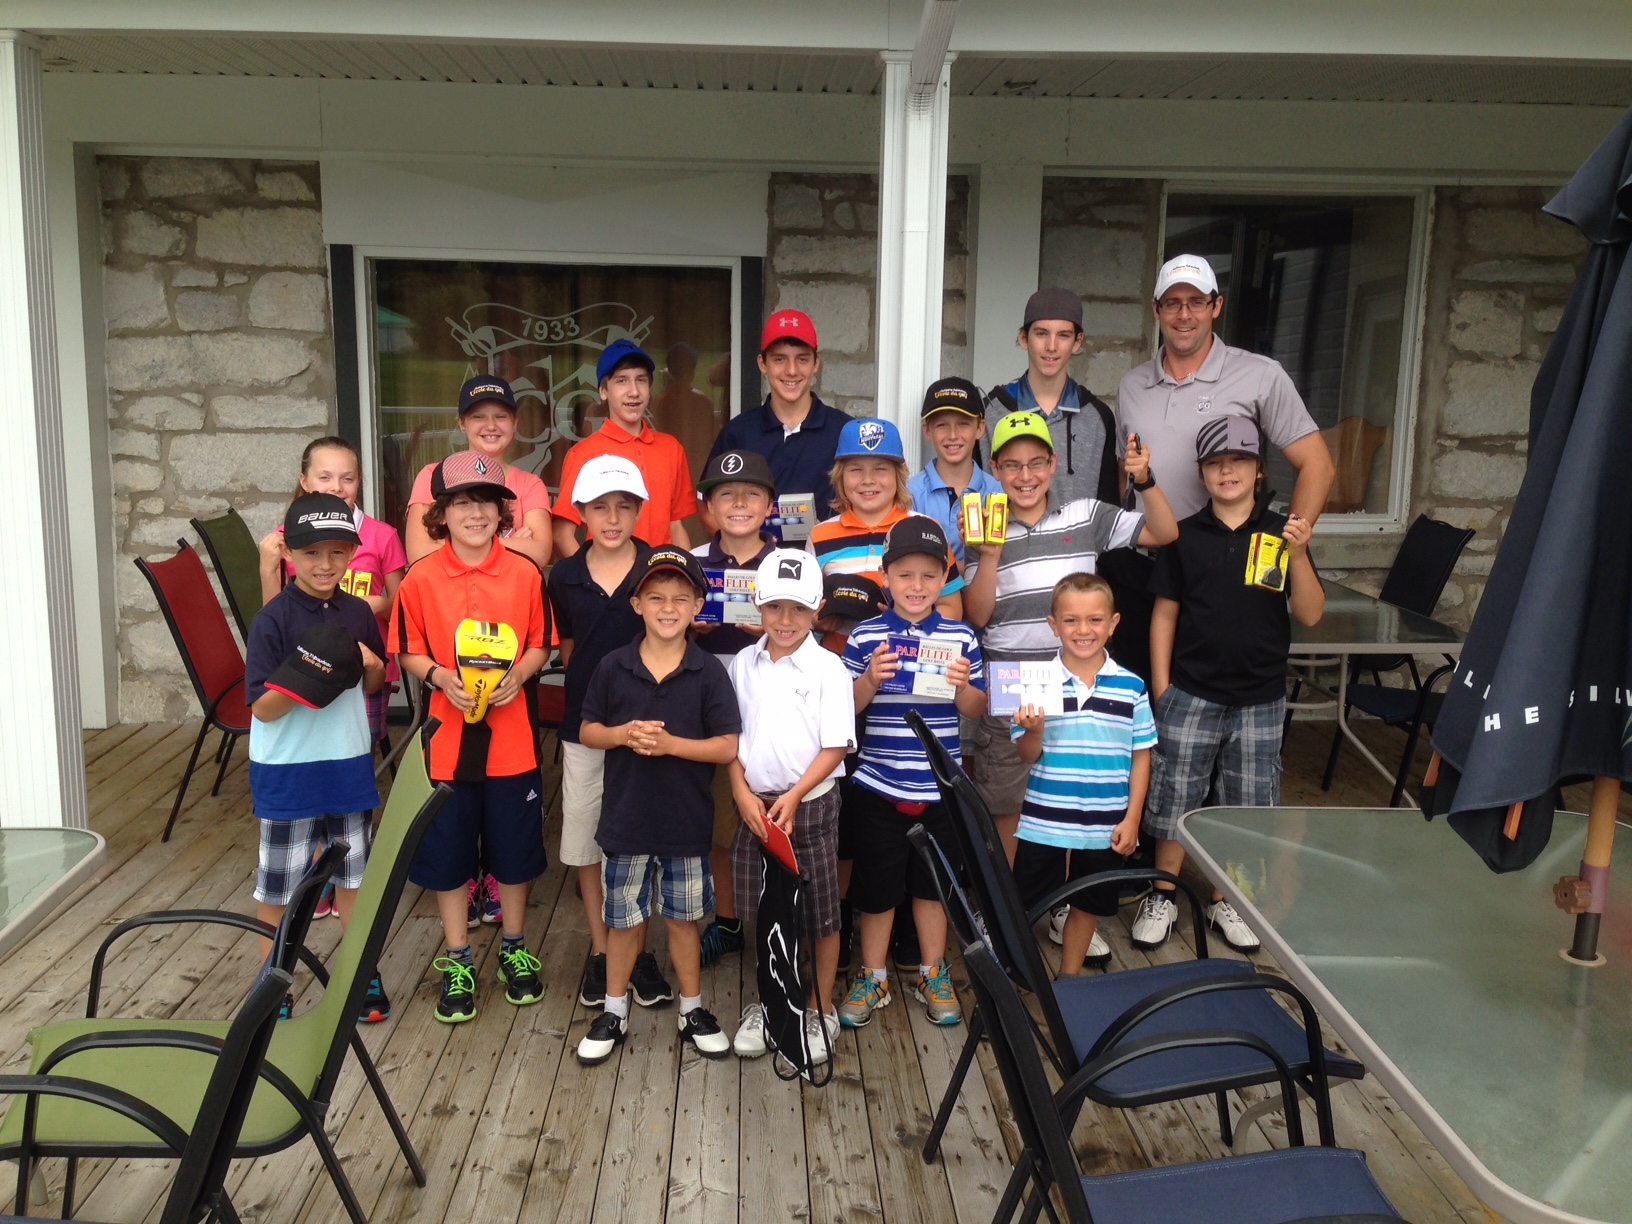 Groupe de camp de golf pour juniors